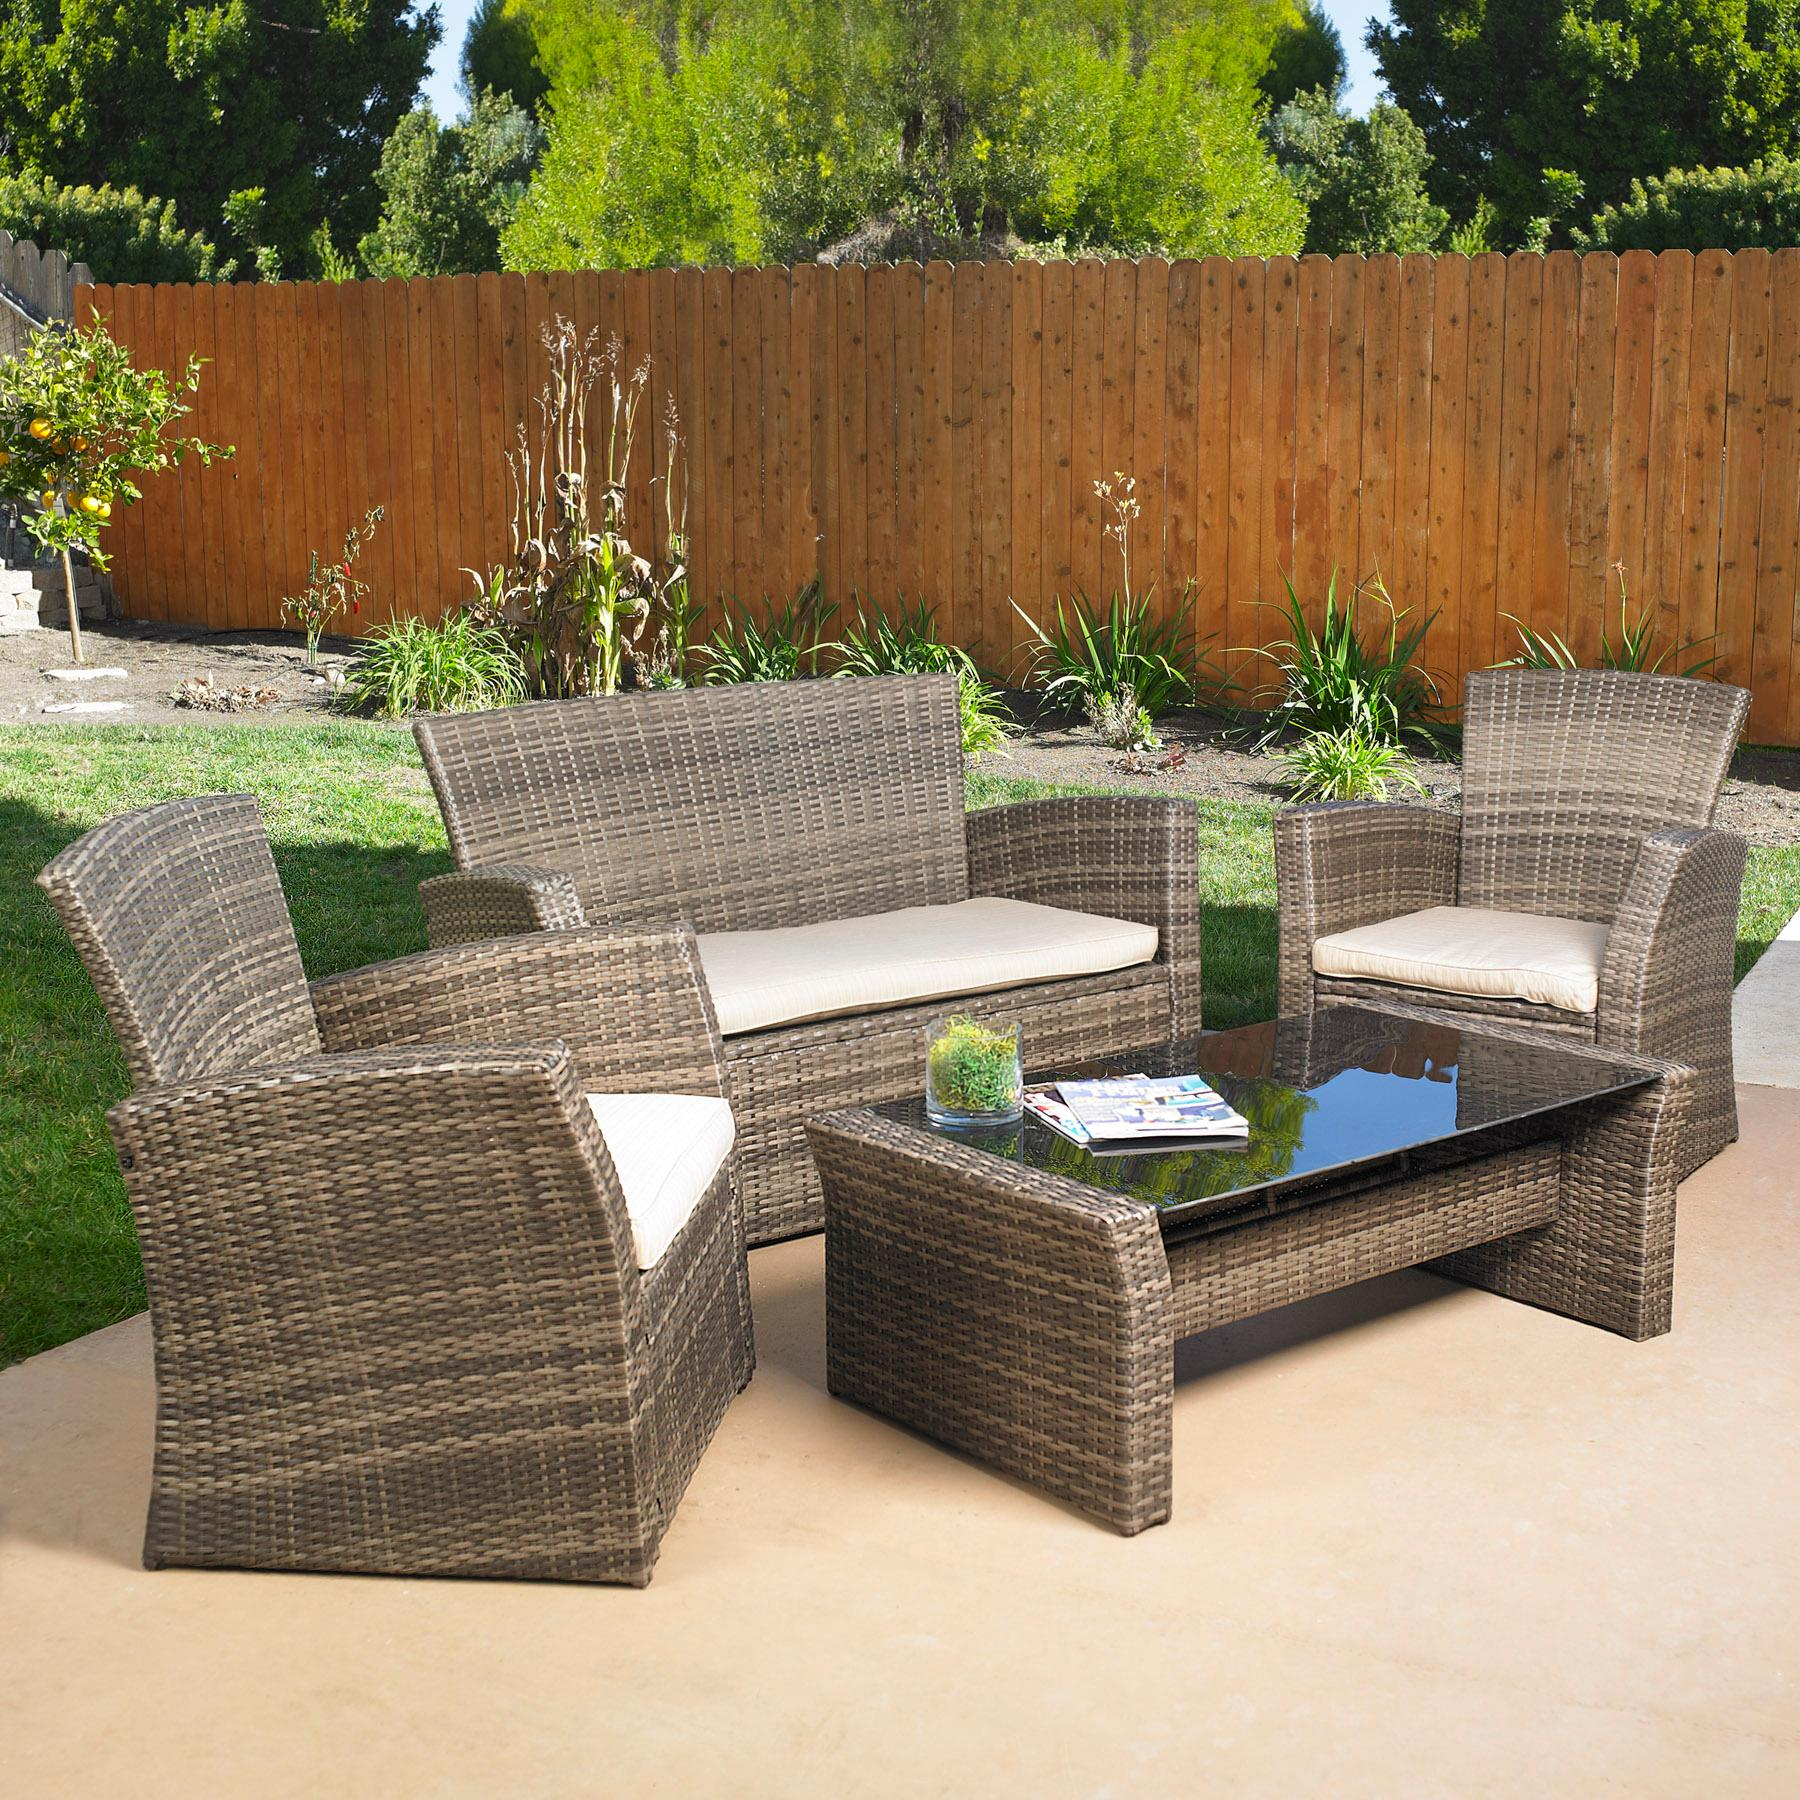 choosing wood the patio sun harmonia cast plastic size best furniture what living aluminum livingroom arizona outdoor manufacturers of synthetic resin in to buy for full ideas